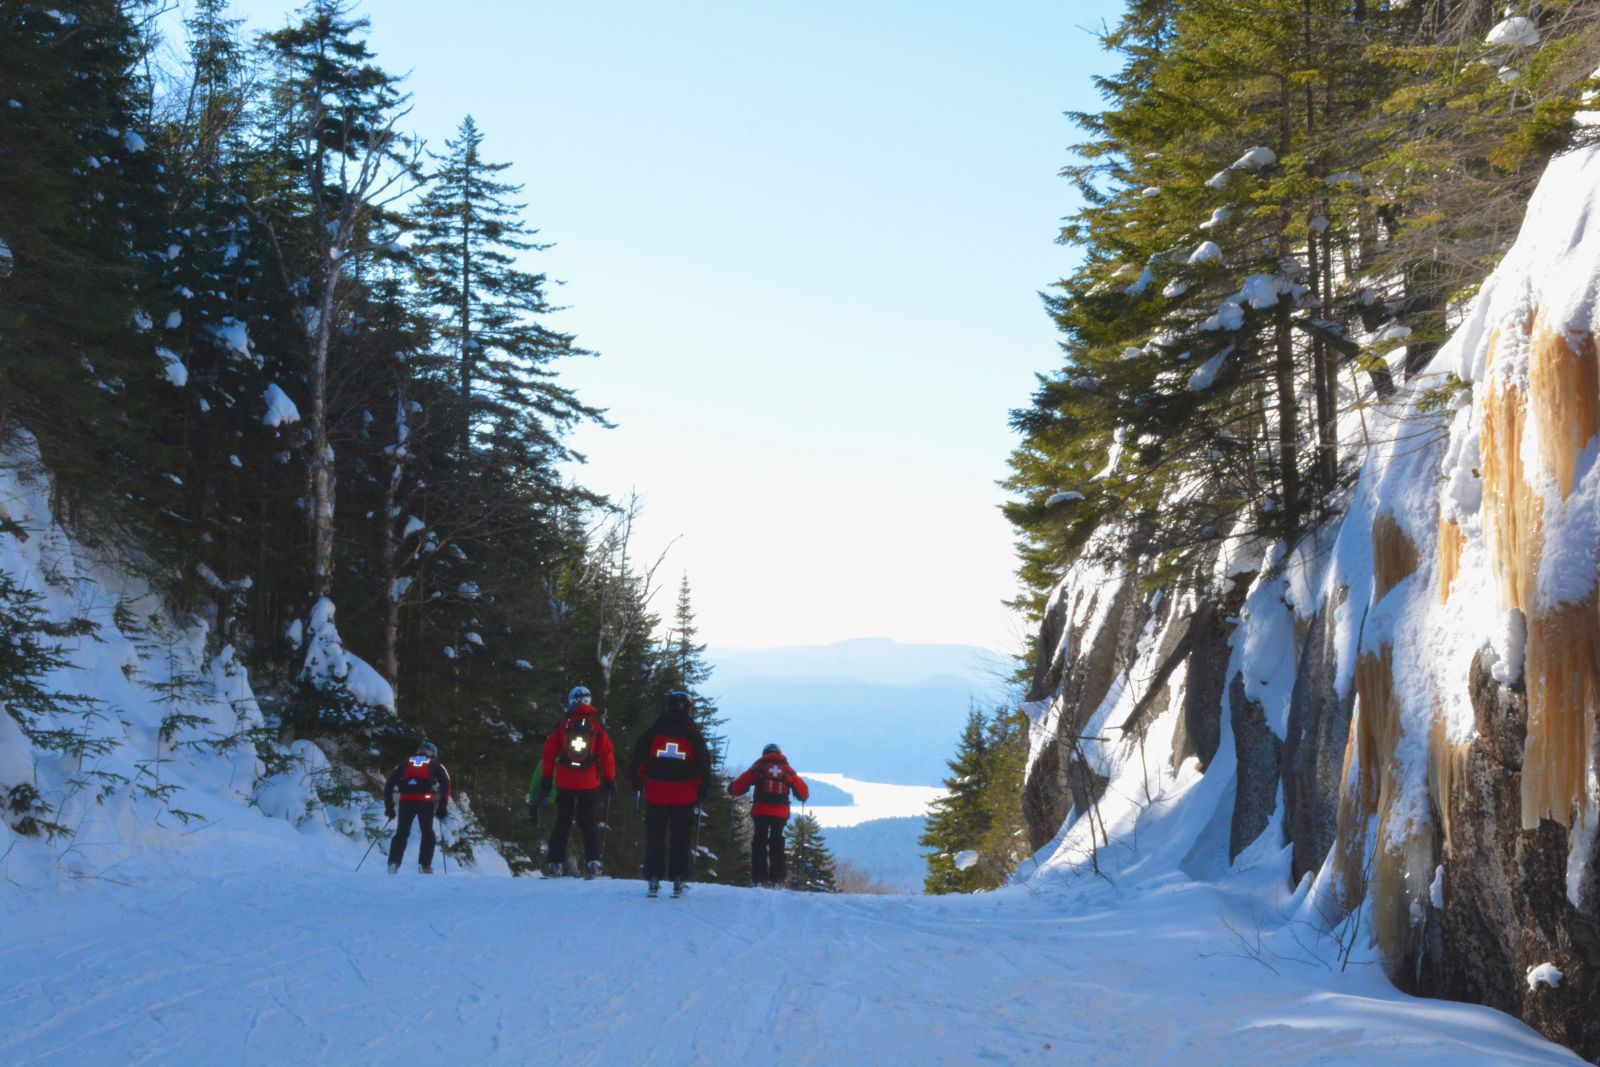 A team of patrollers heads down Palisades at the end of the day to sweep the trails of Chair 3.